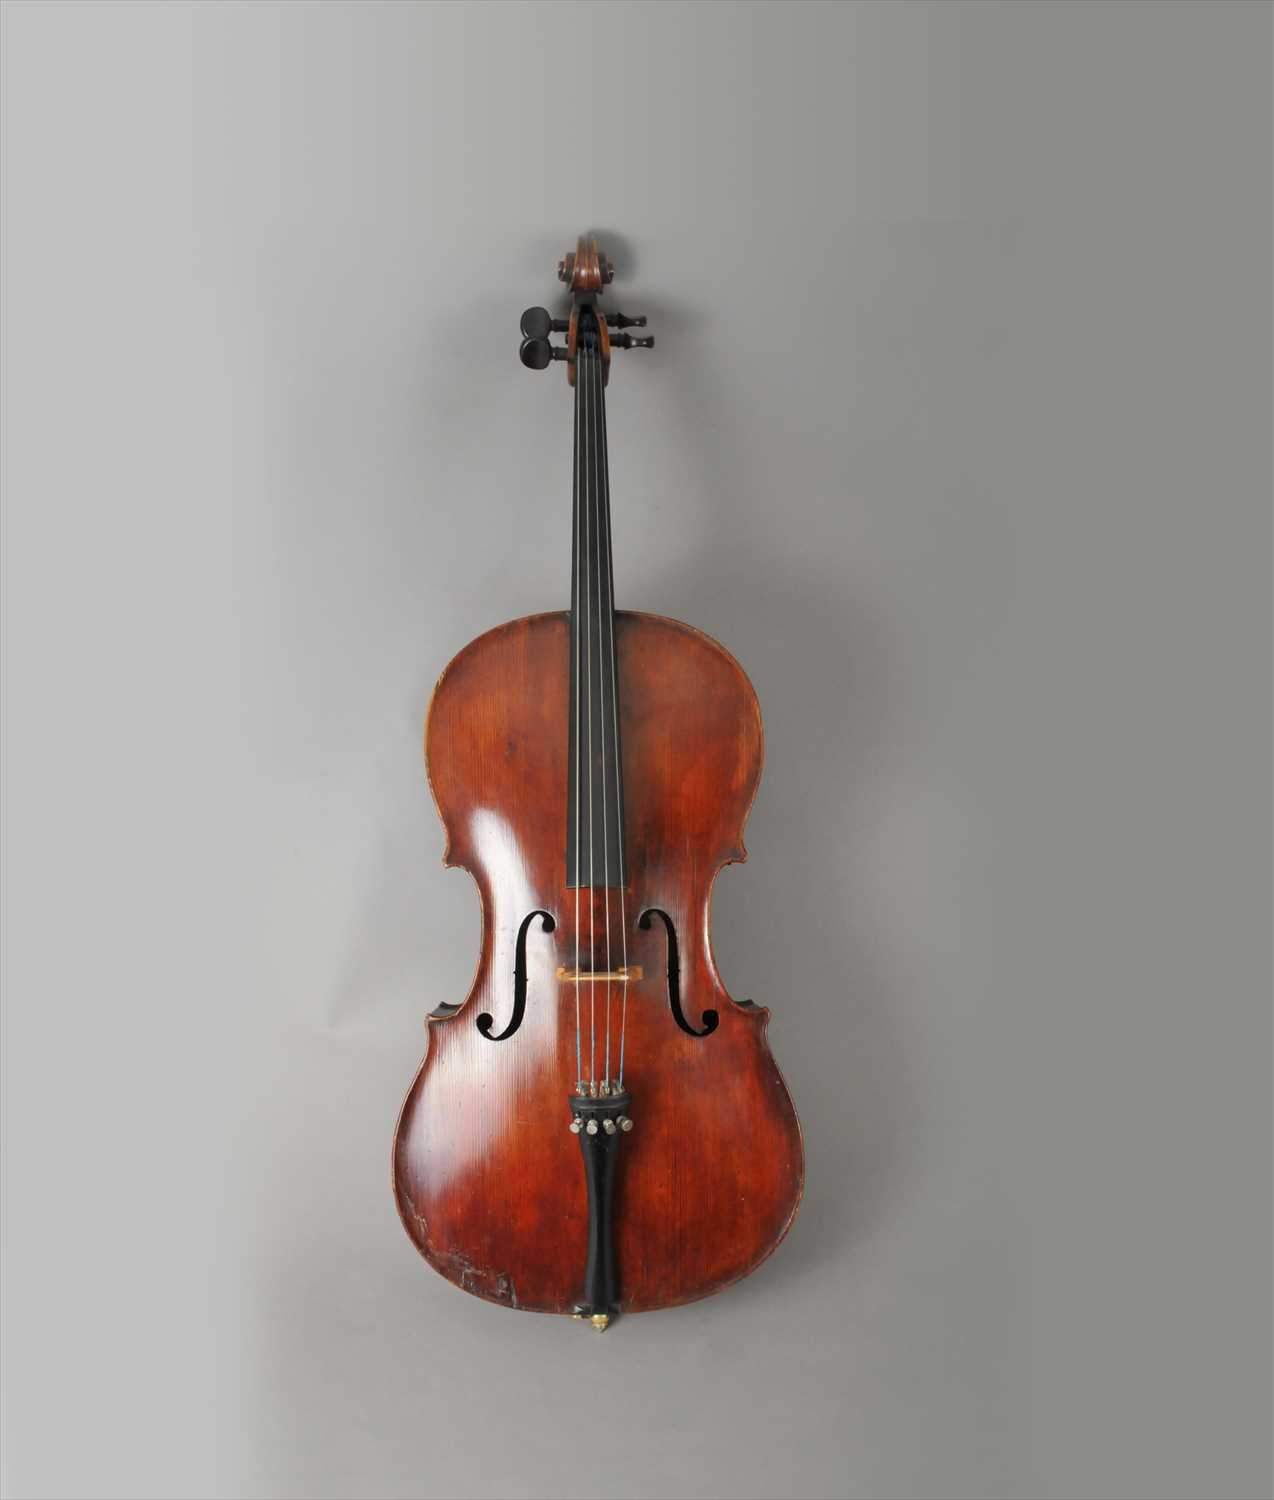 650 - Attributed Panormo School (Edward Ferdinand Panormo, an English violoncello, c1830